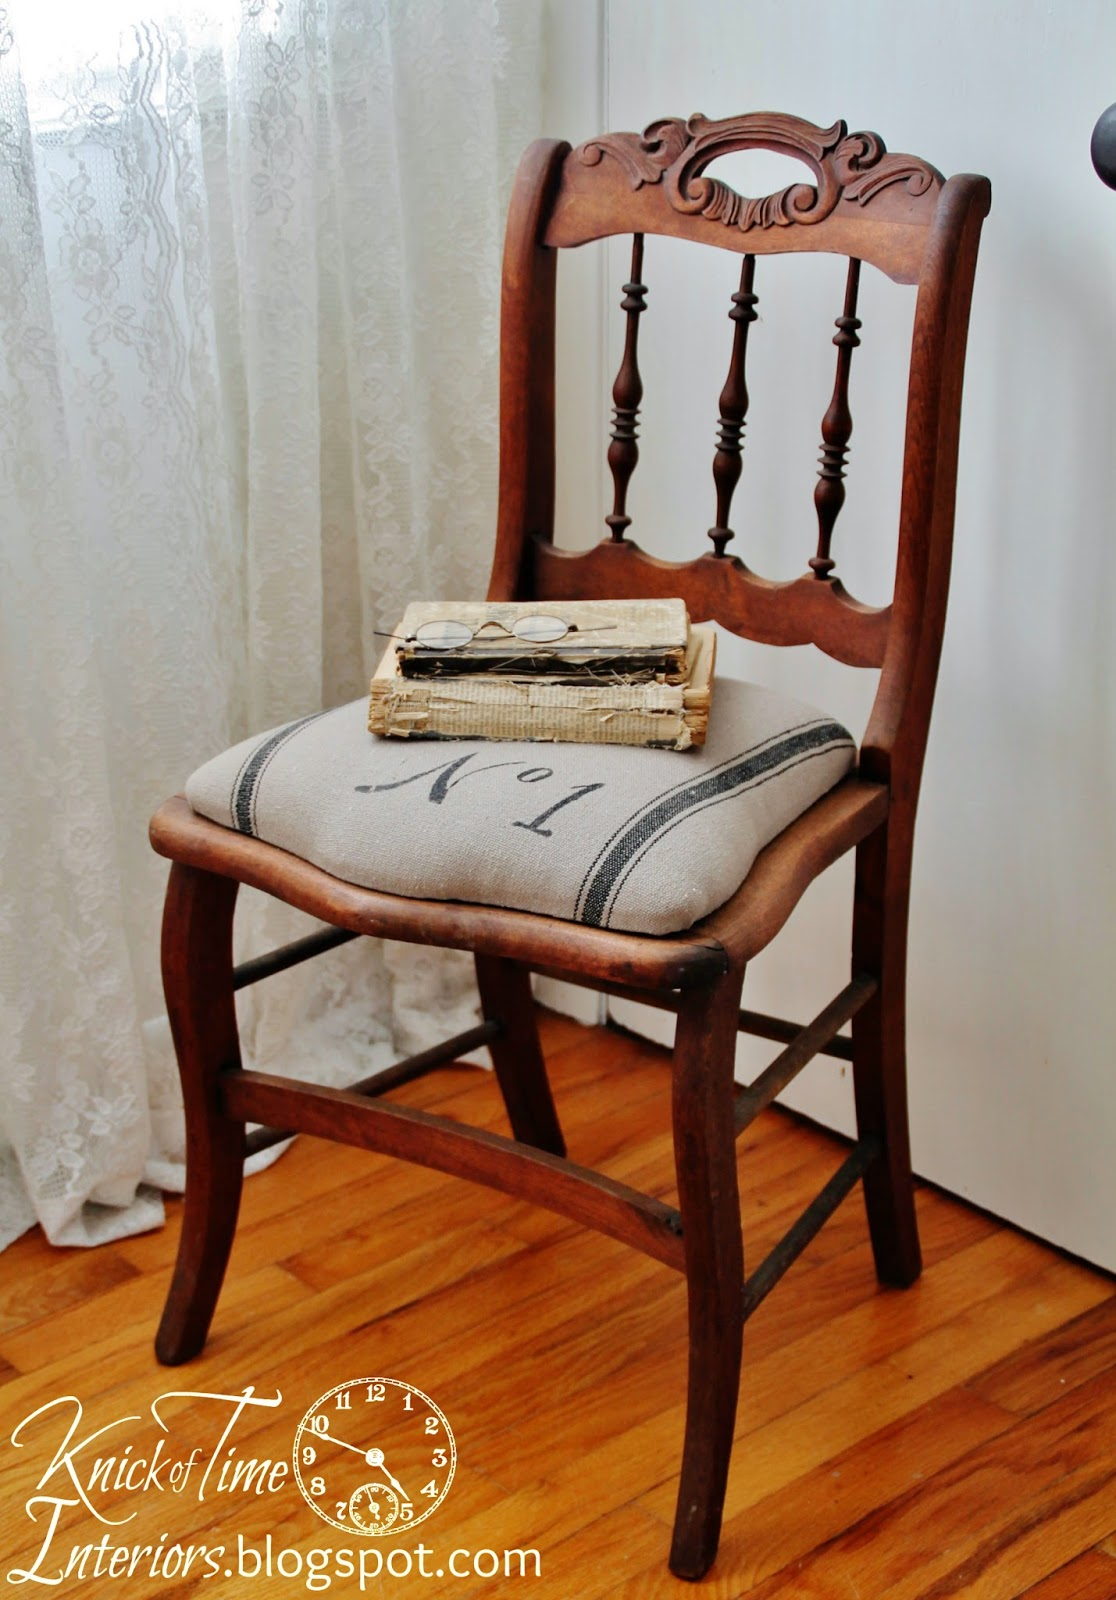 Decor Steals Grain Sack Chair by Knick of Time